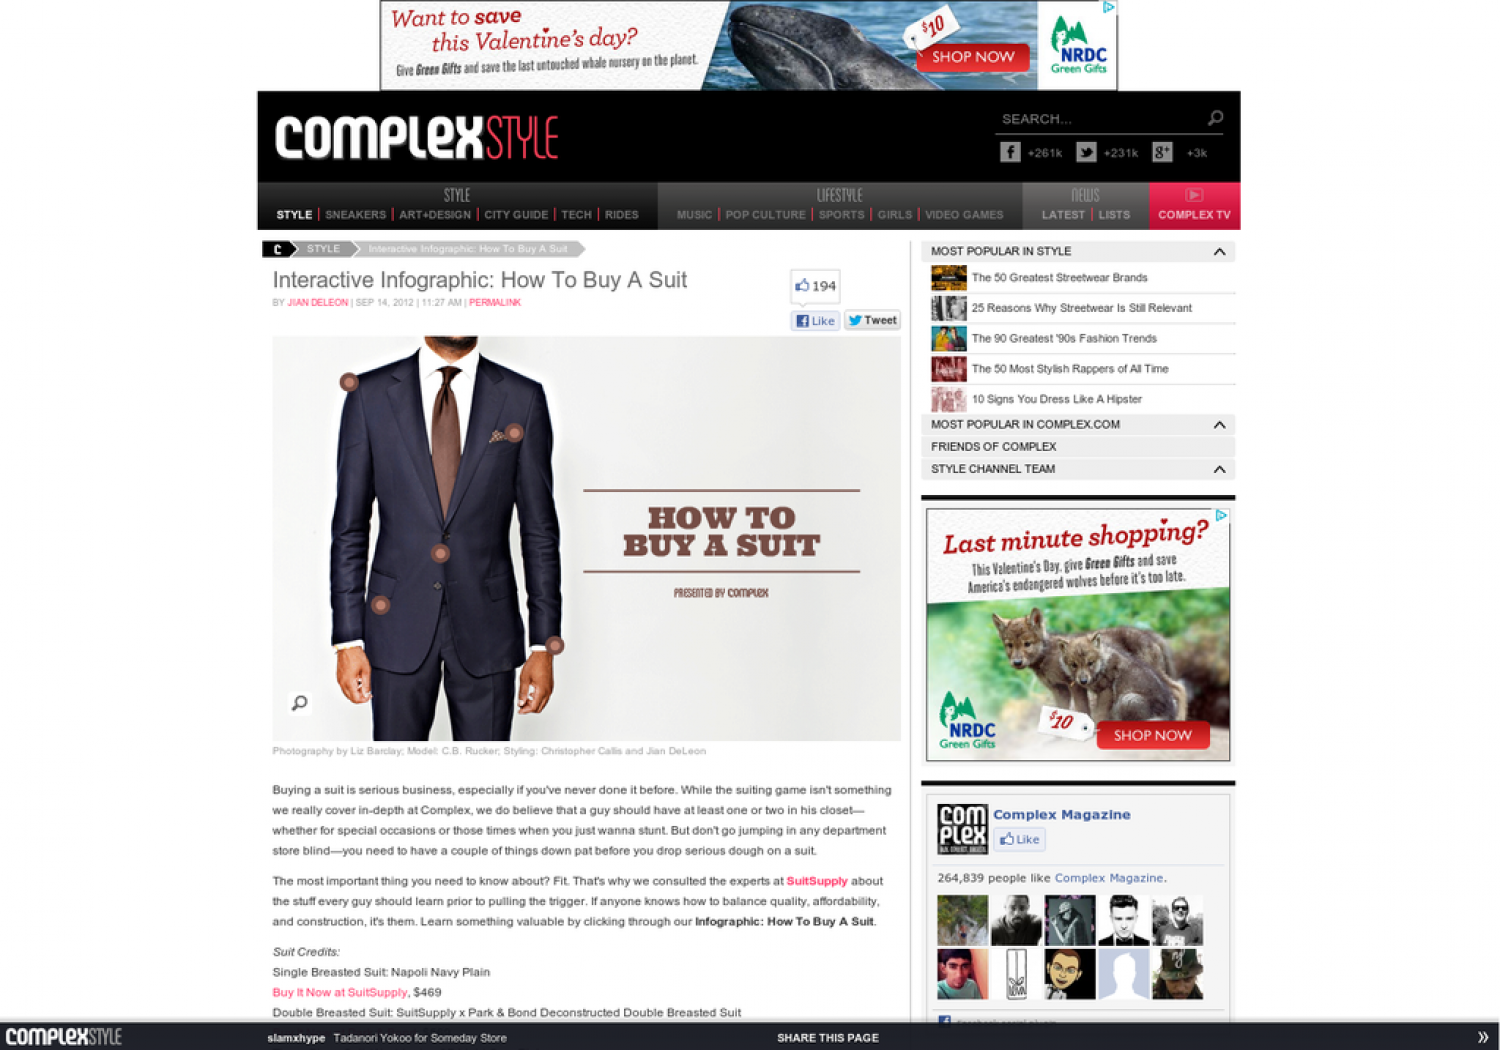 How to Buy a Suit Infographic